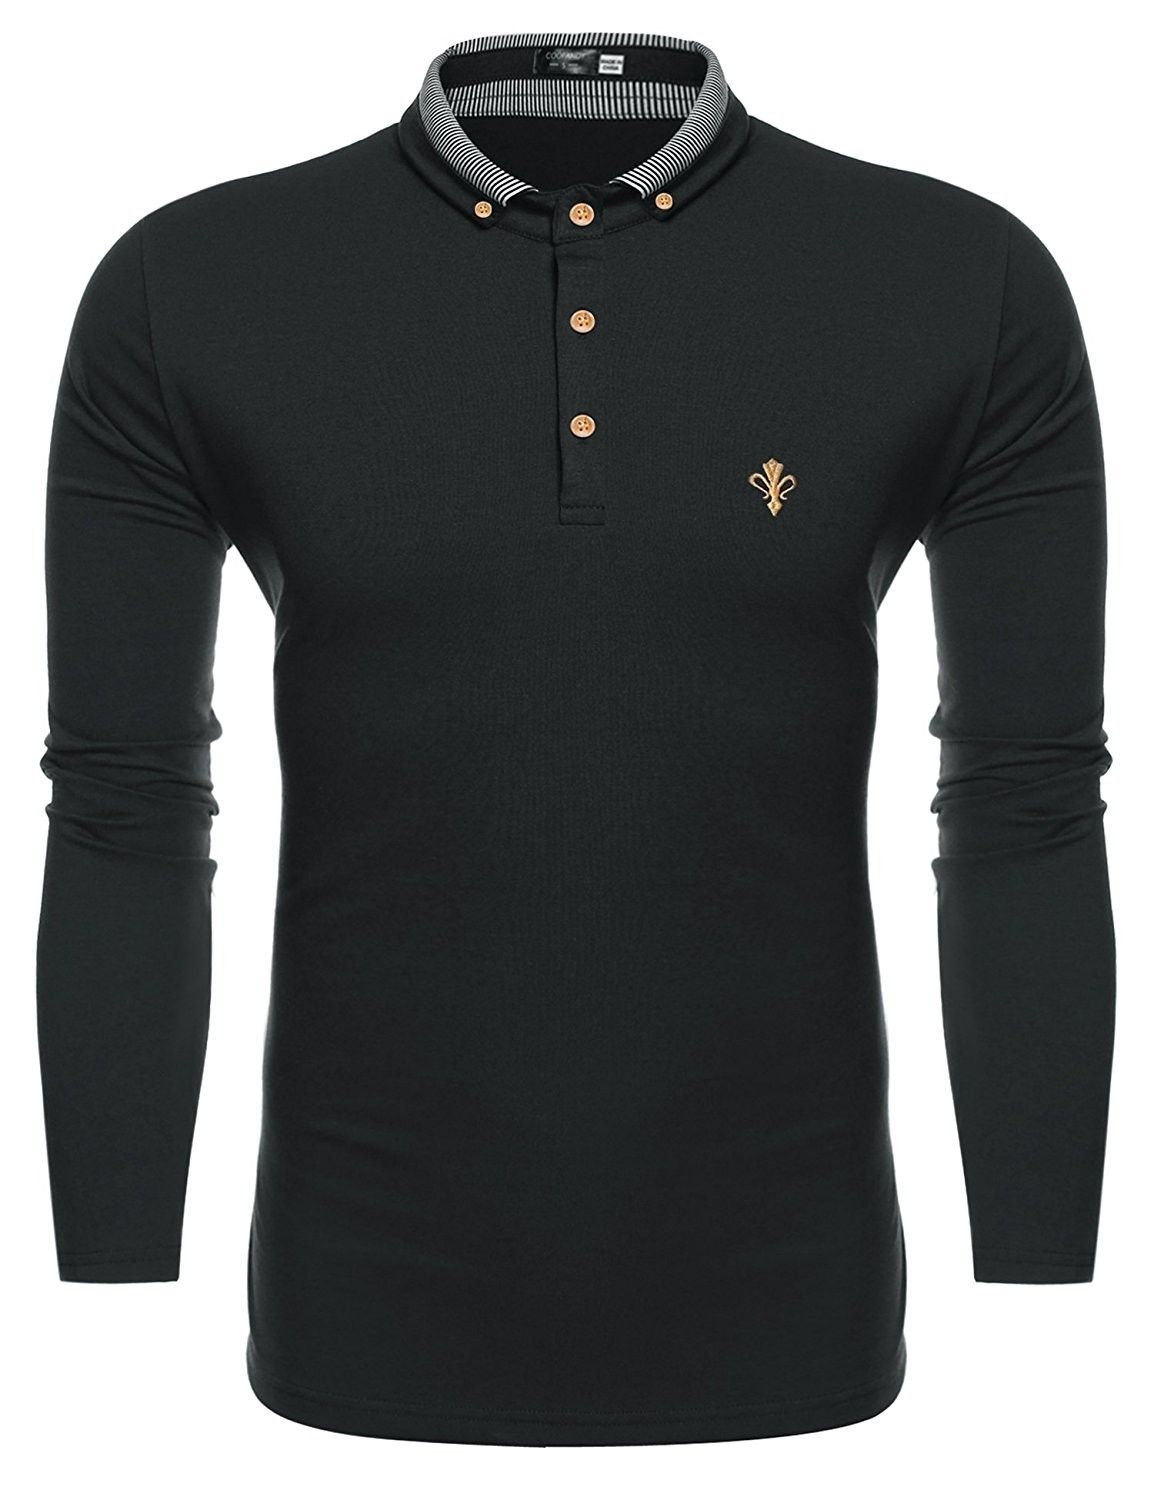 Mens Long Sleeve Polo Shirt Classic Causal Business Slim Fit Cotton